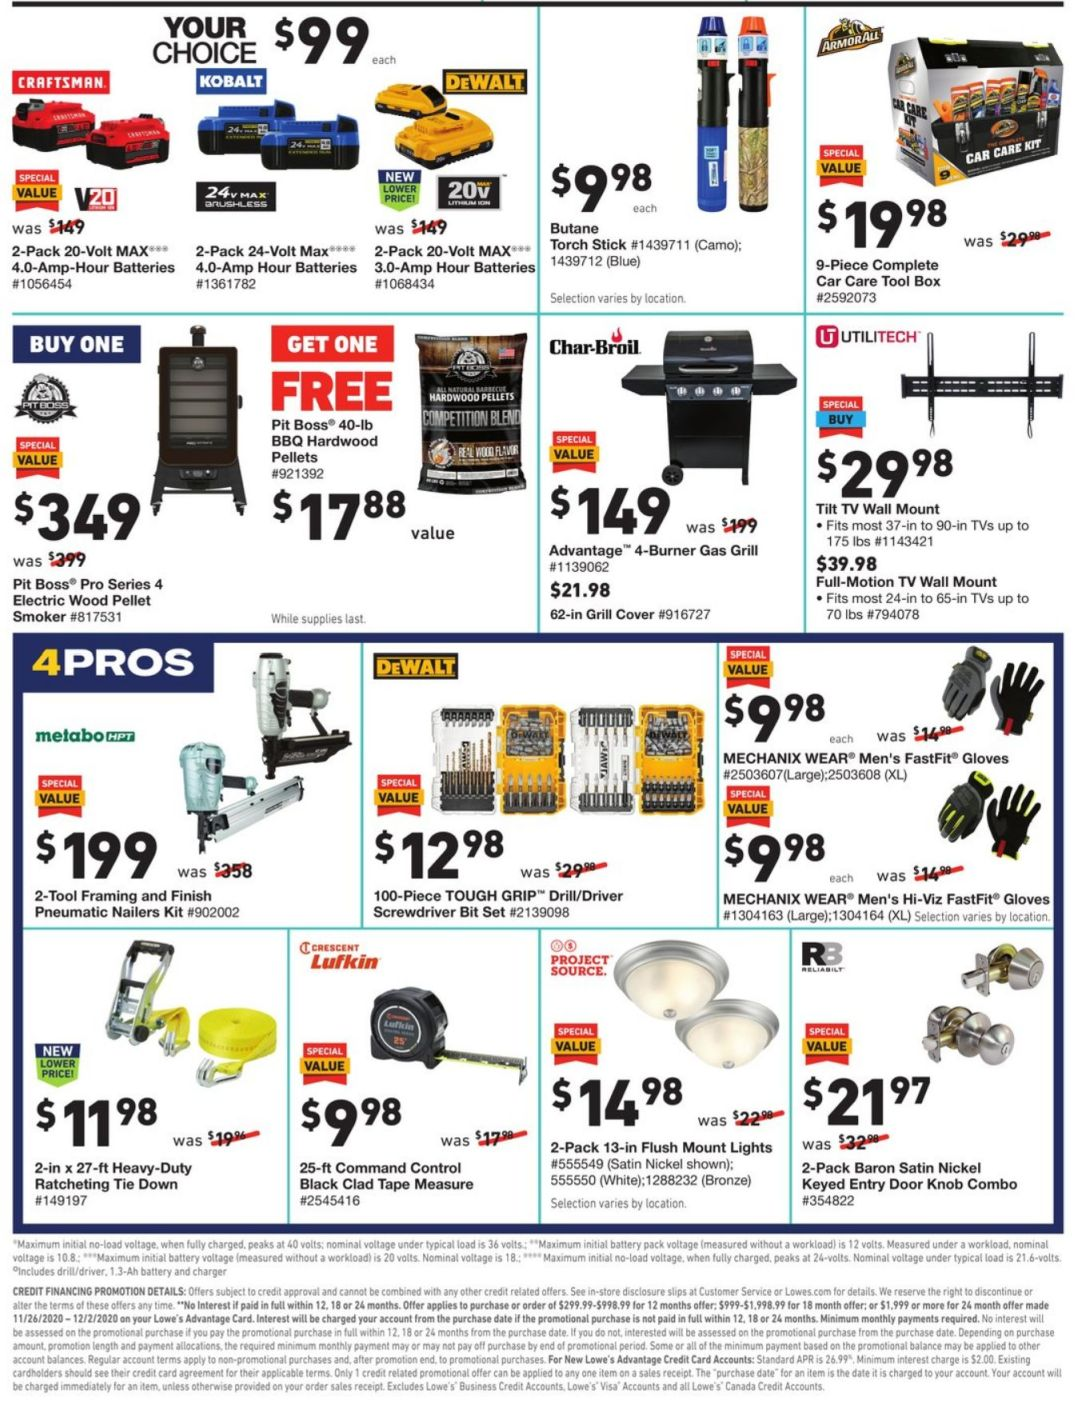 Lowe's Black Friday and Cyber Monday 2020 Page 6